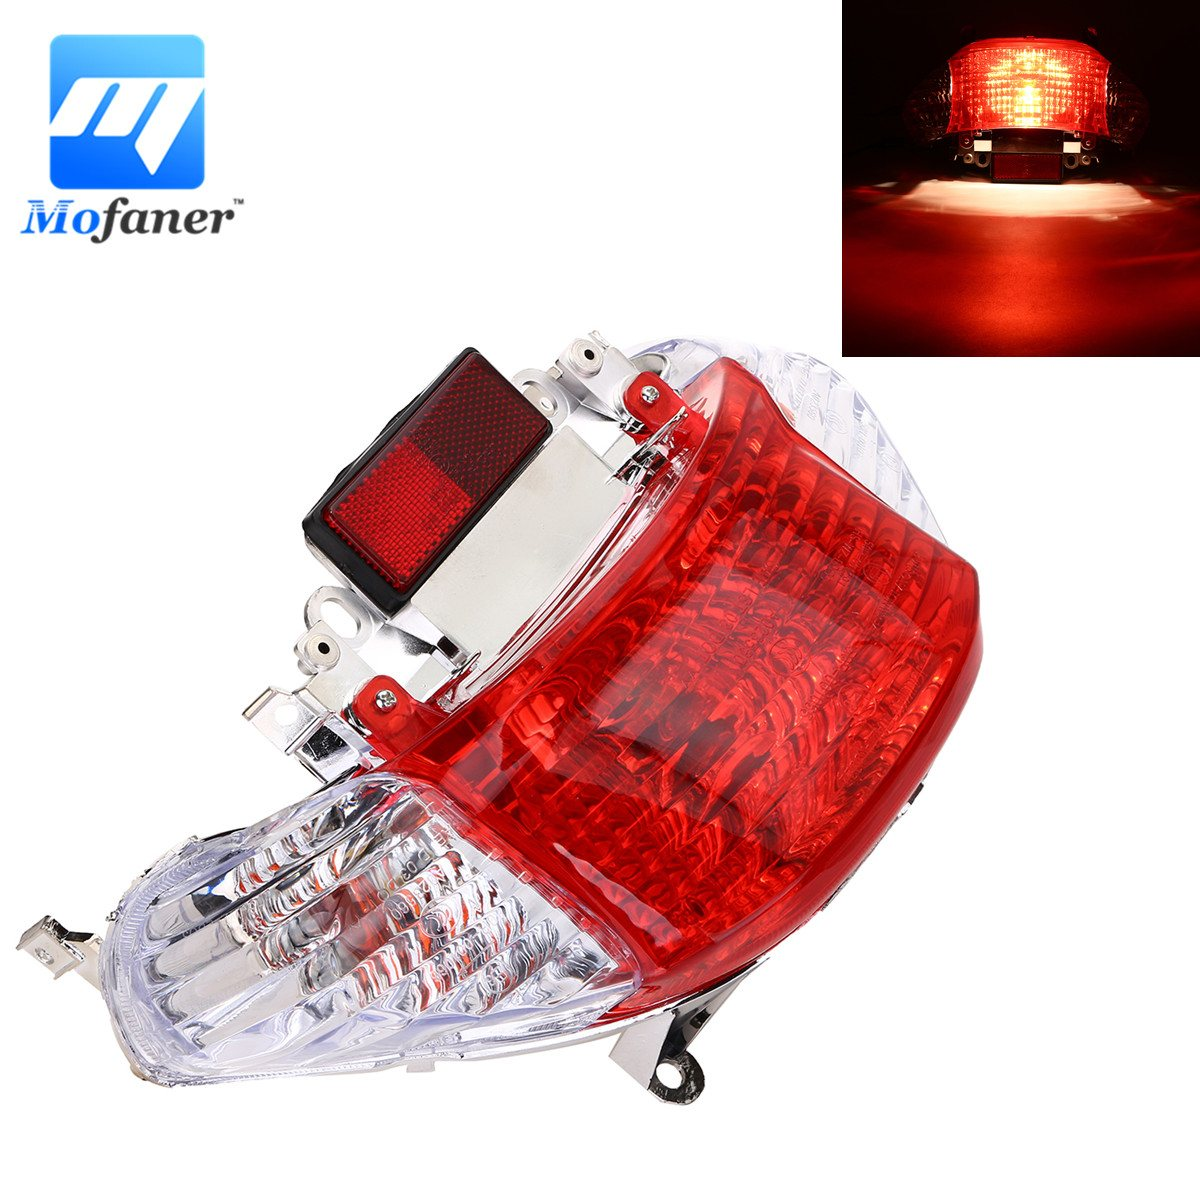 Mofaner Motorcycle Gy6 Scooter 50cc Rear Tail Light Turn Signal For CHINESE TAOTAO SUNNY